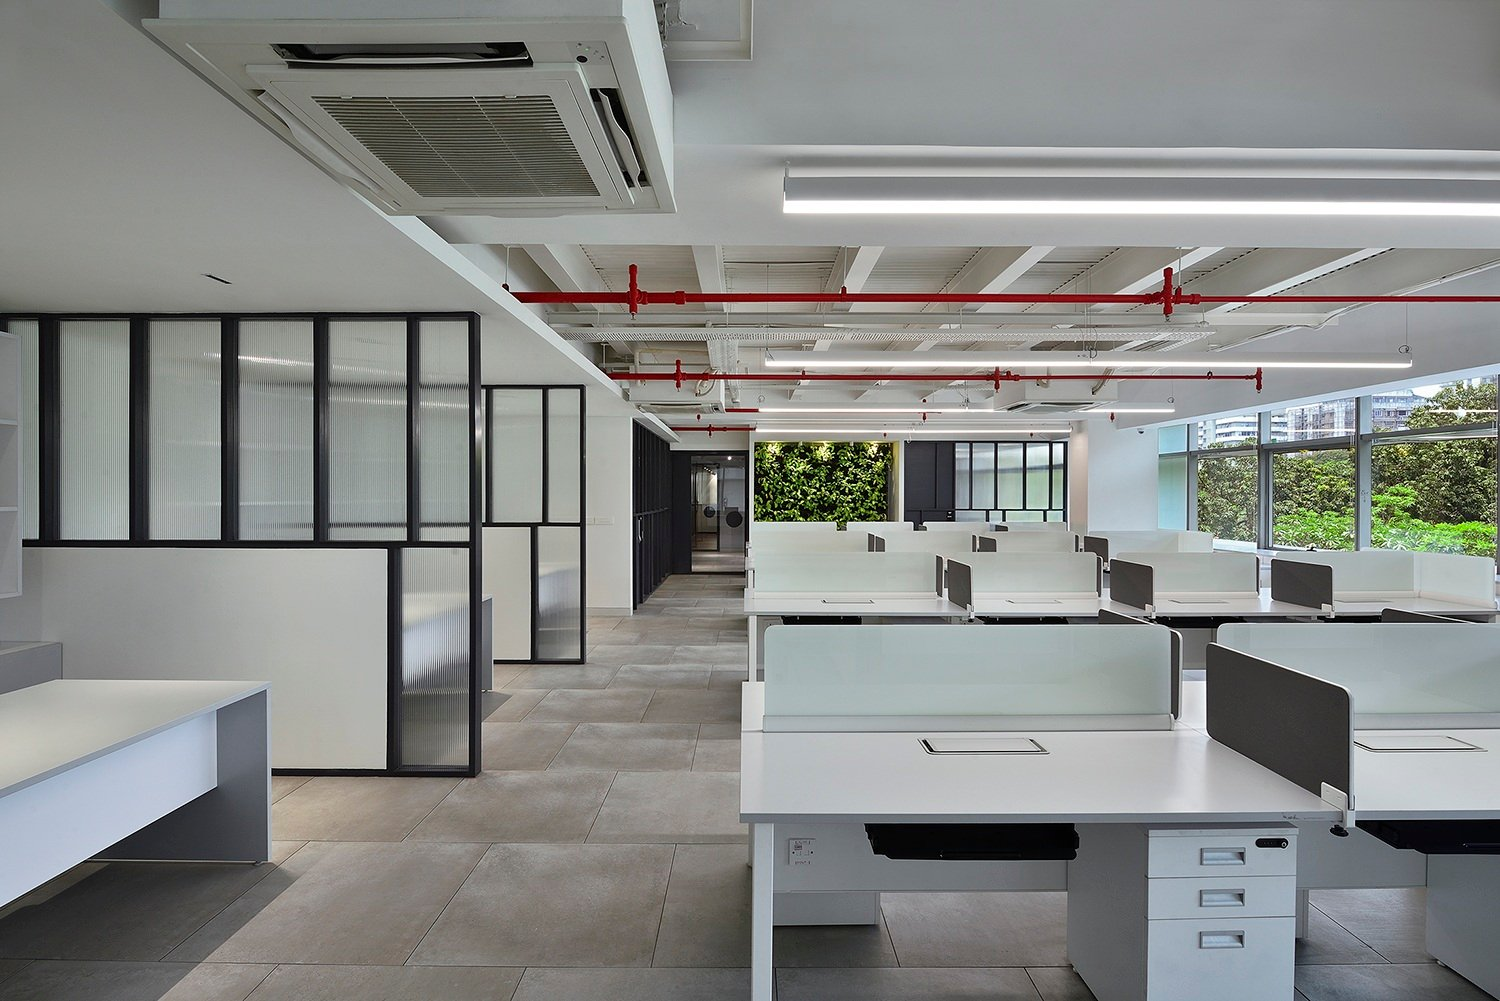 View of the workstations and translucent partitions Ravi Kanade